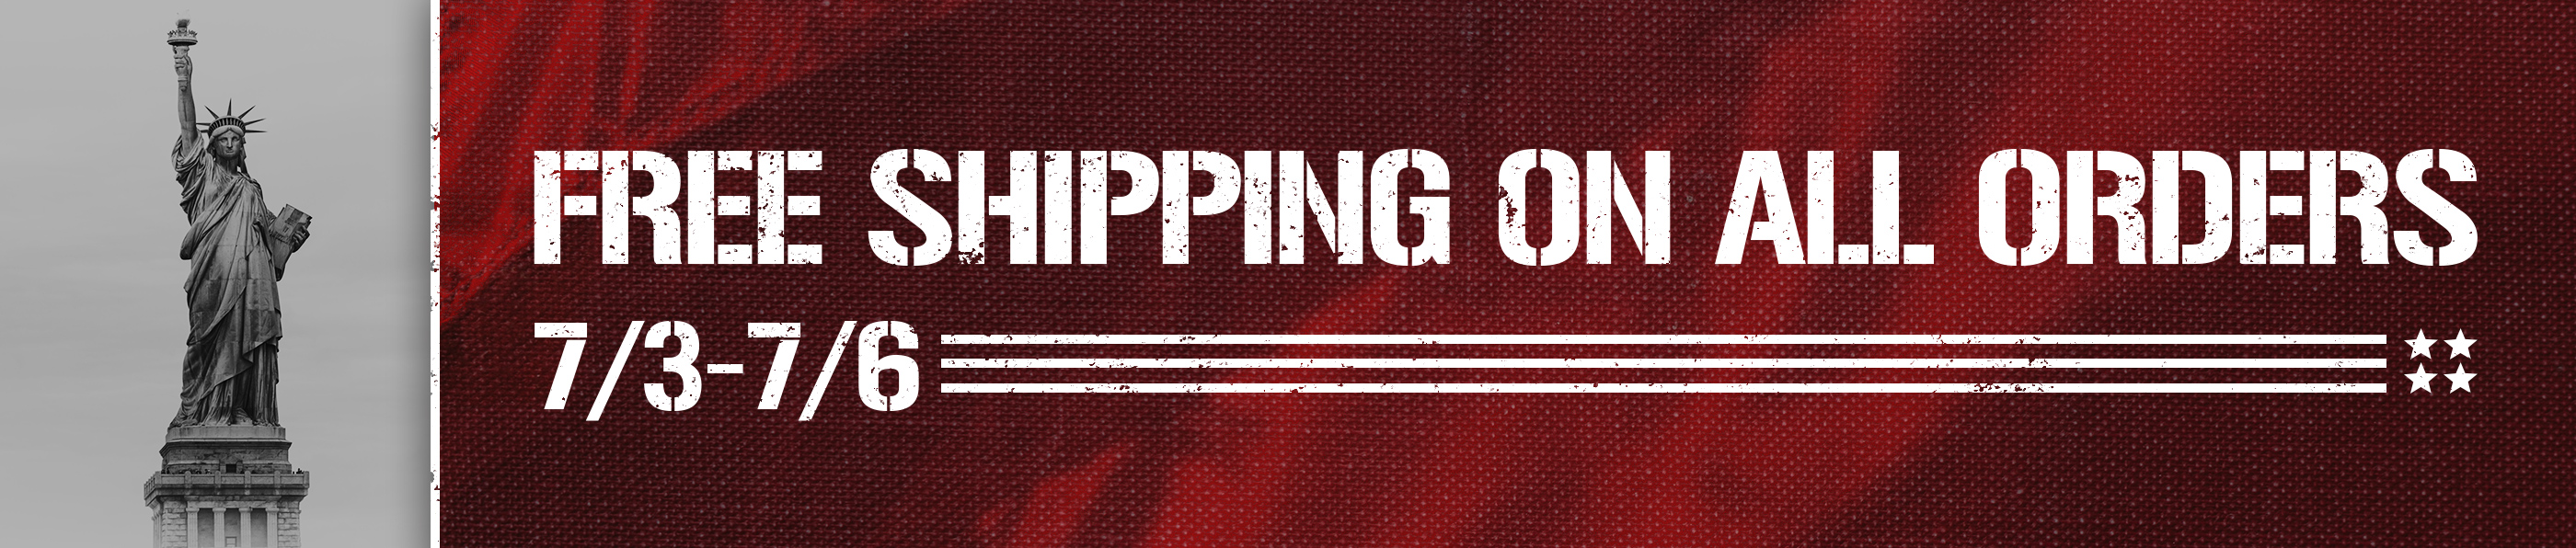 FREE Shipping All Orders